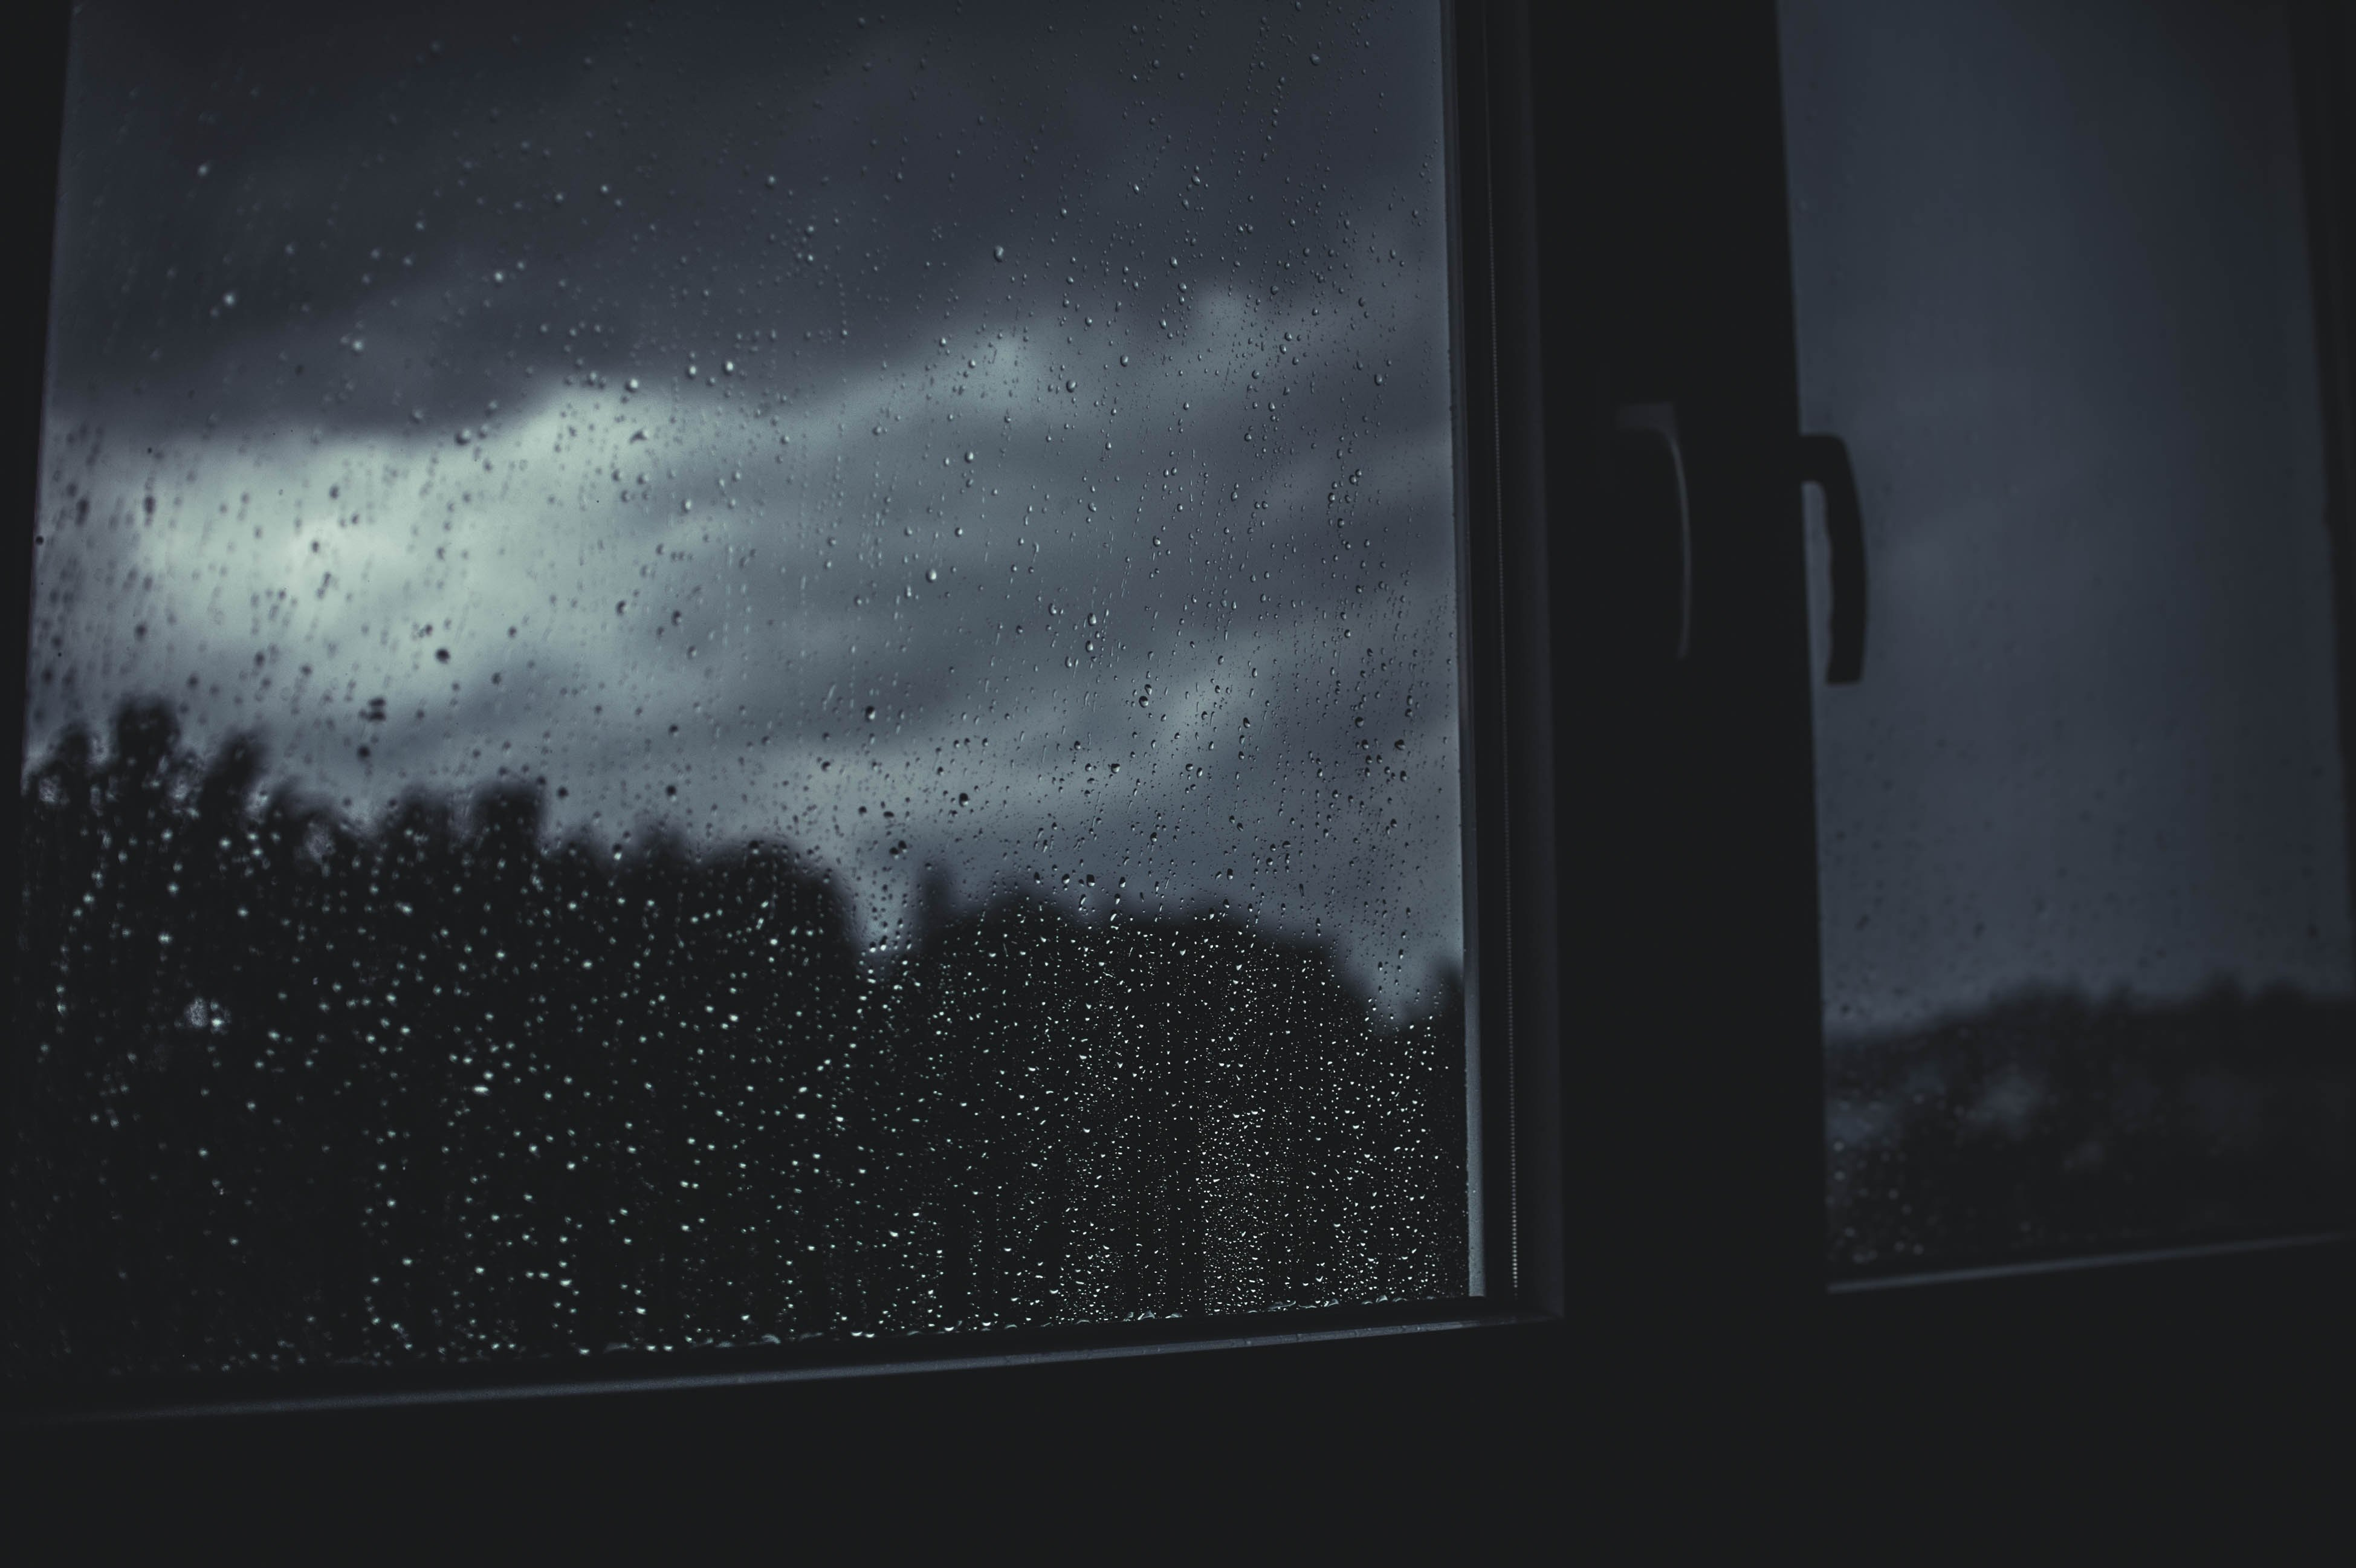 Rain 4k Wallpapers For Your Desktop Or Mobile Screen Free